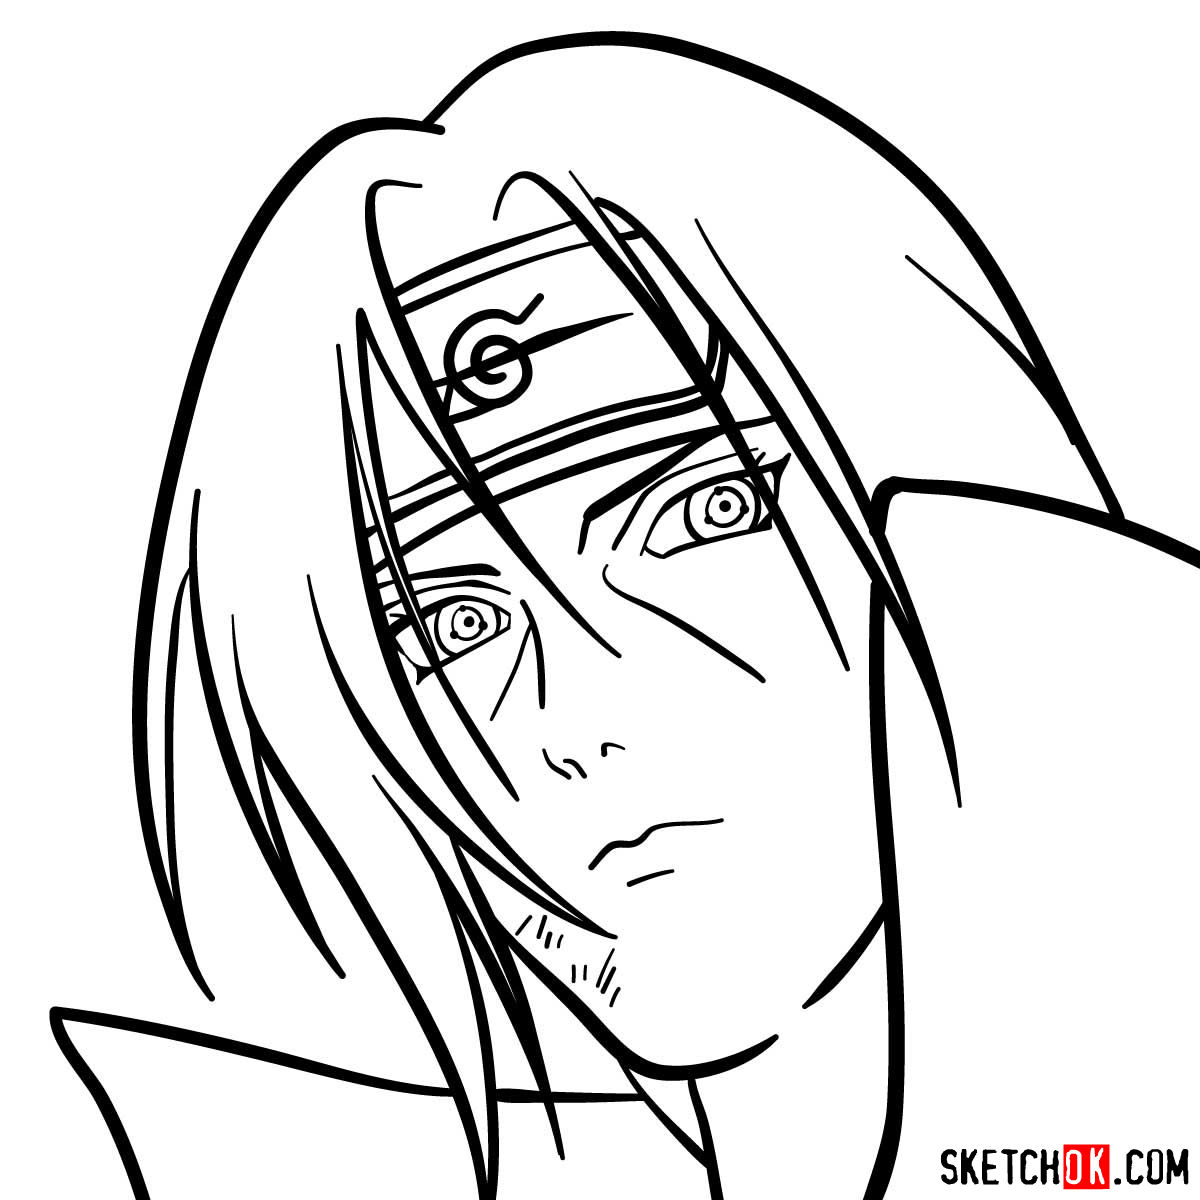 How to draw Itachi's face (Naruto anime) - step 10